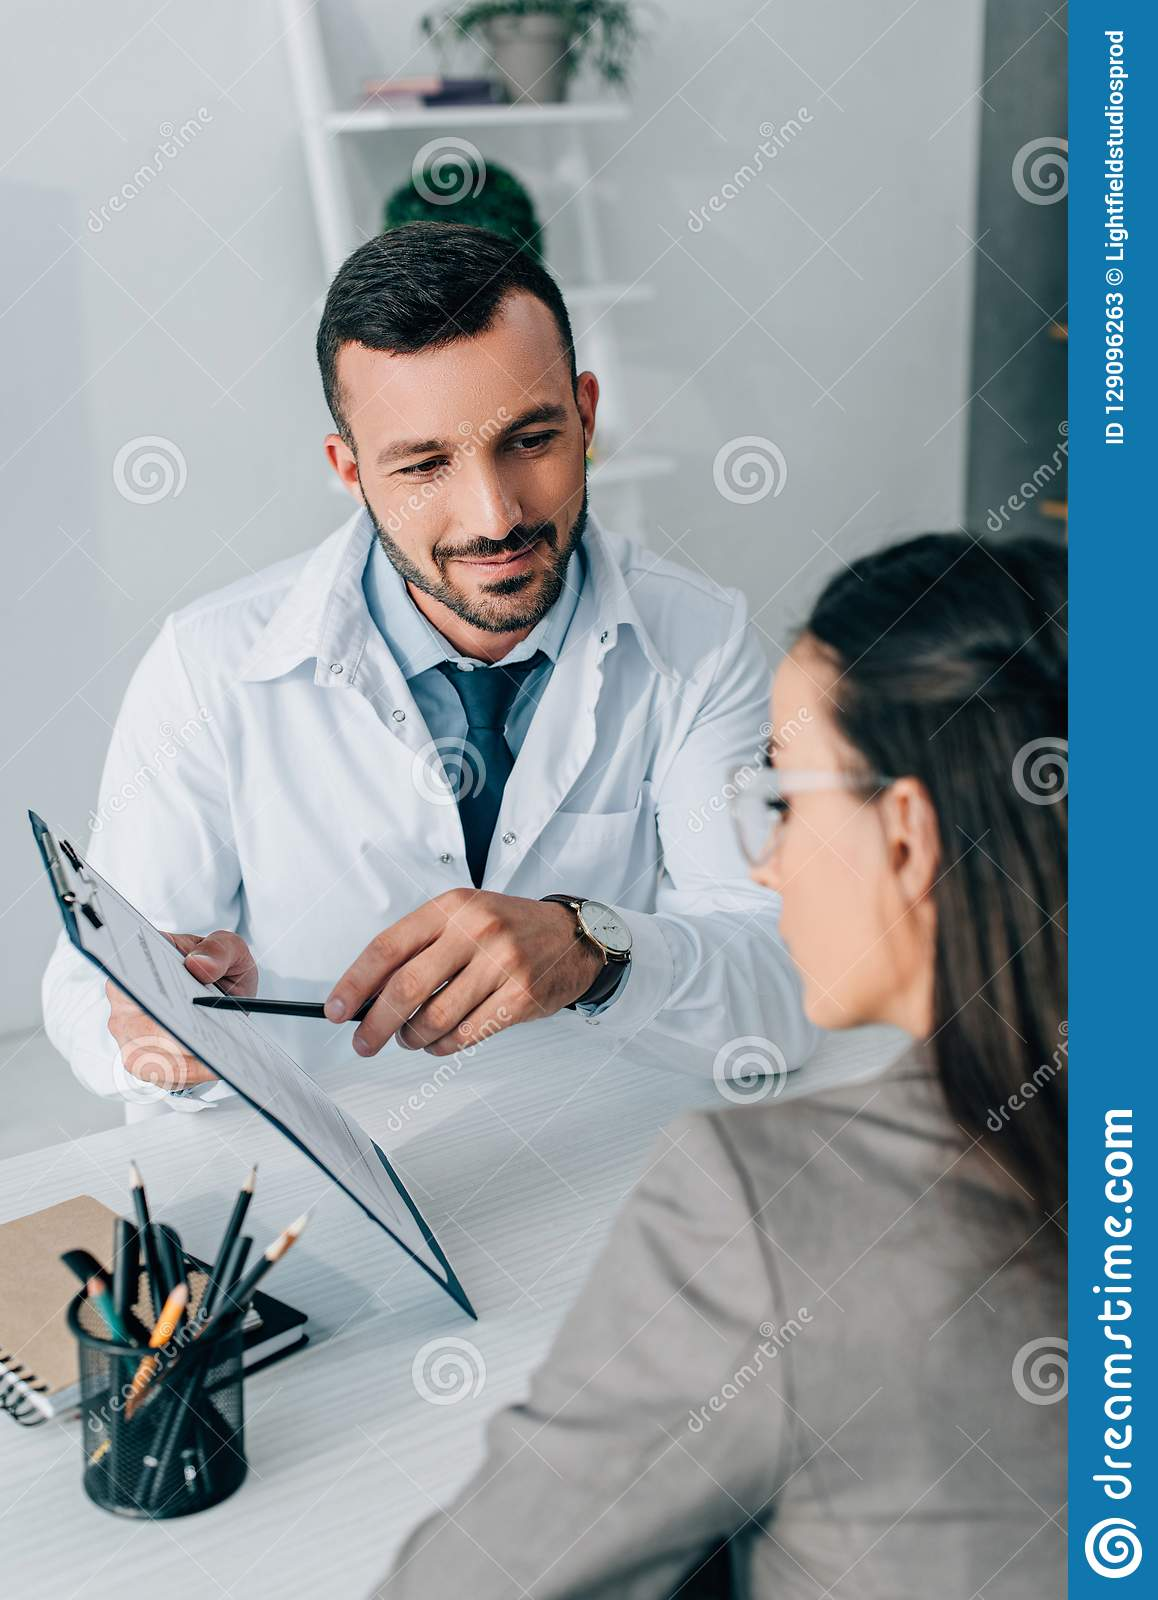 Cheerful Doctor Pointing On Insurance Claim Form To